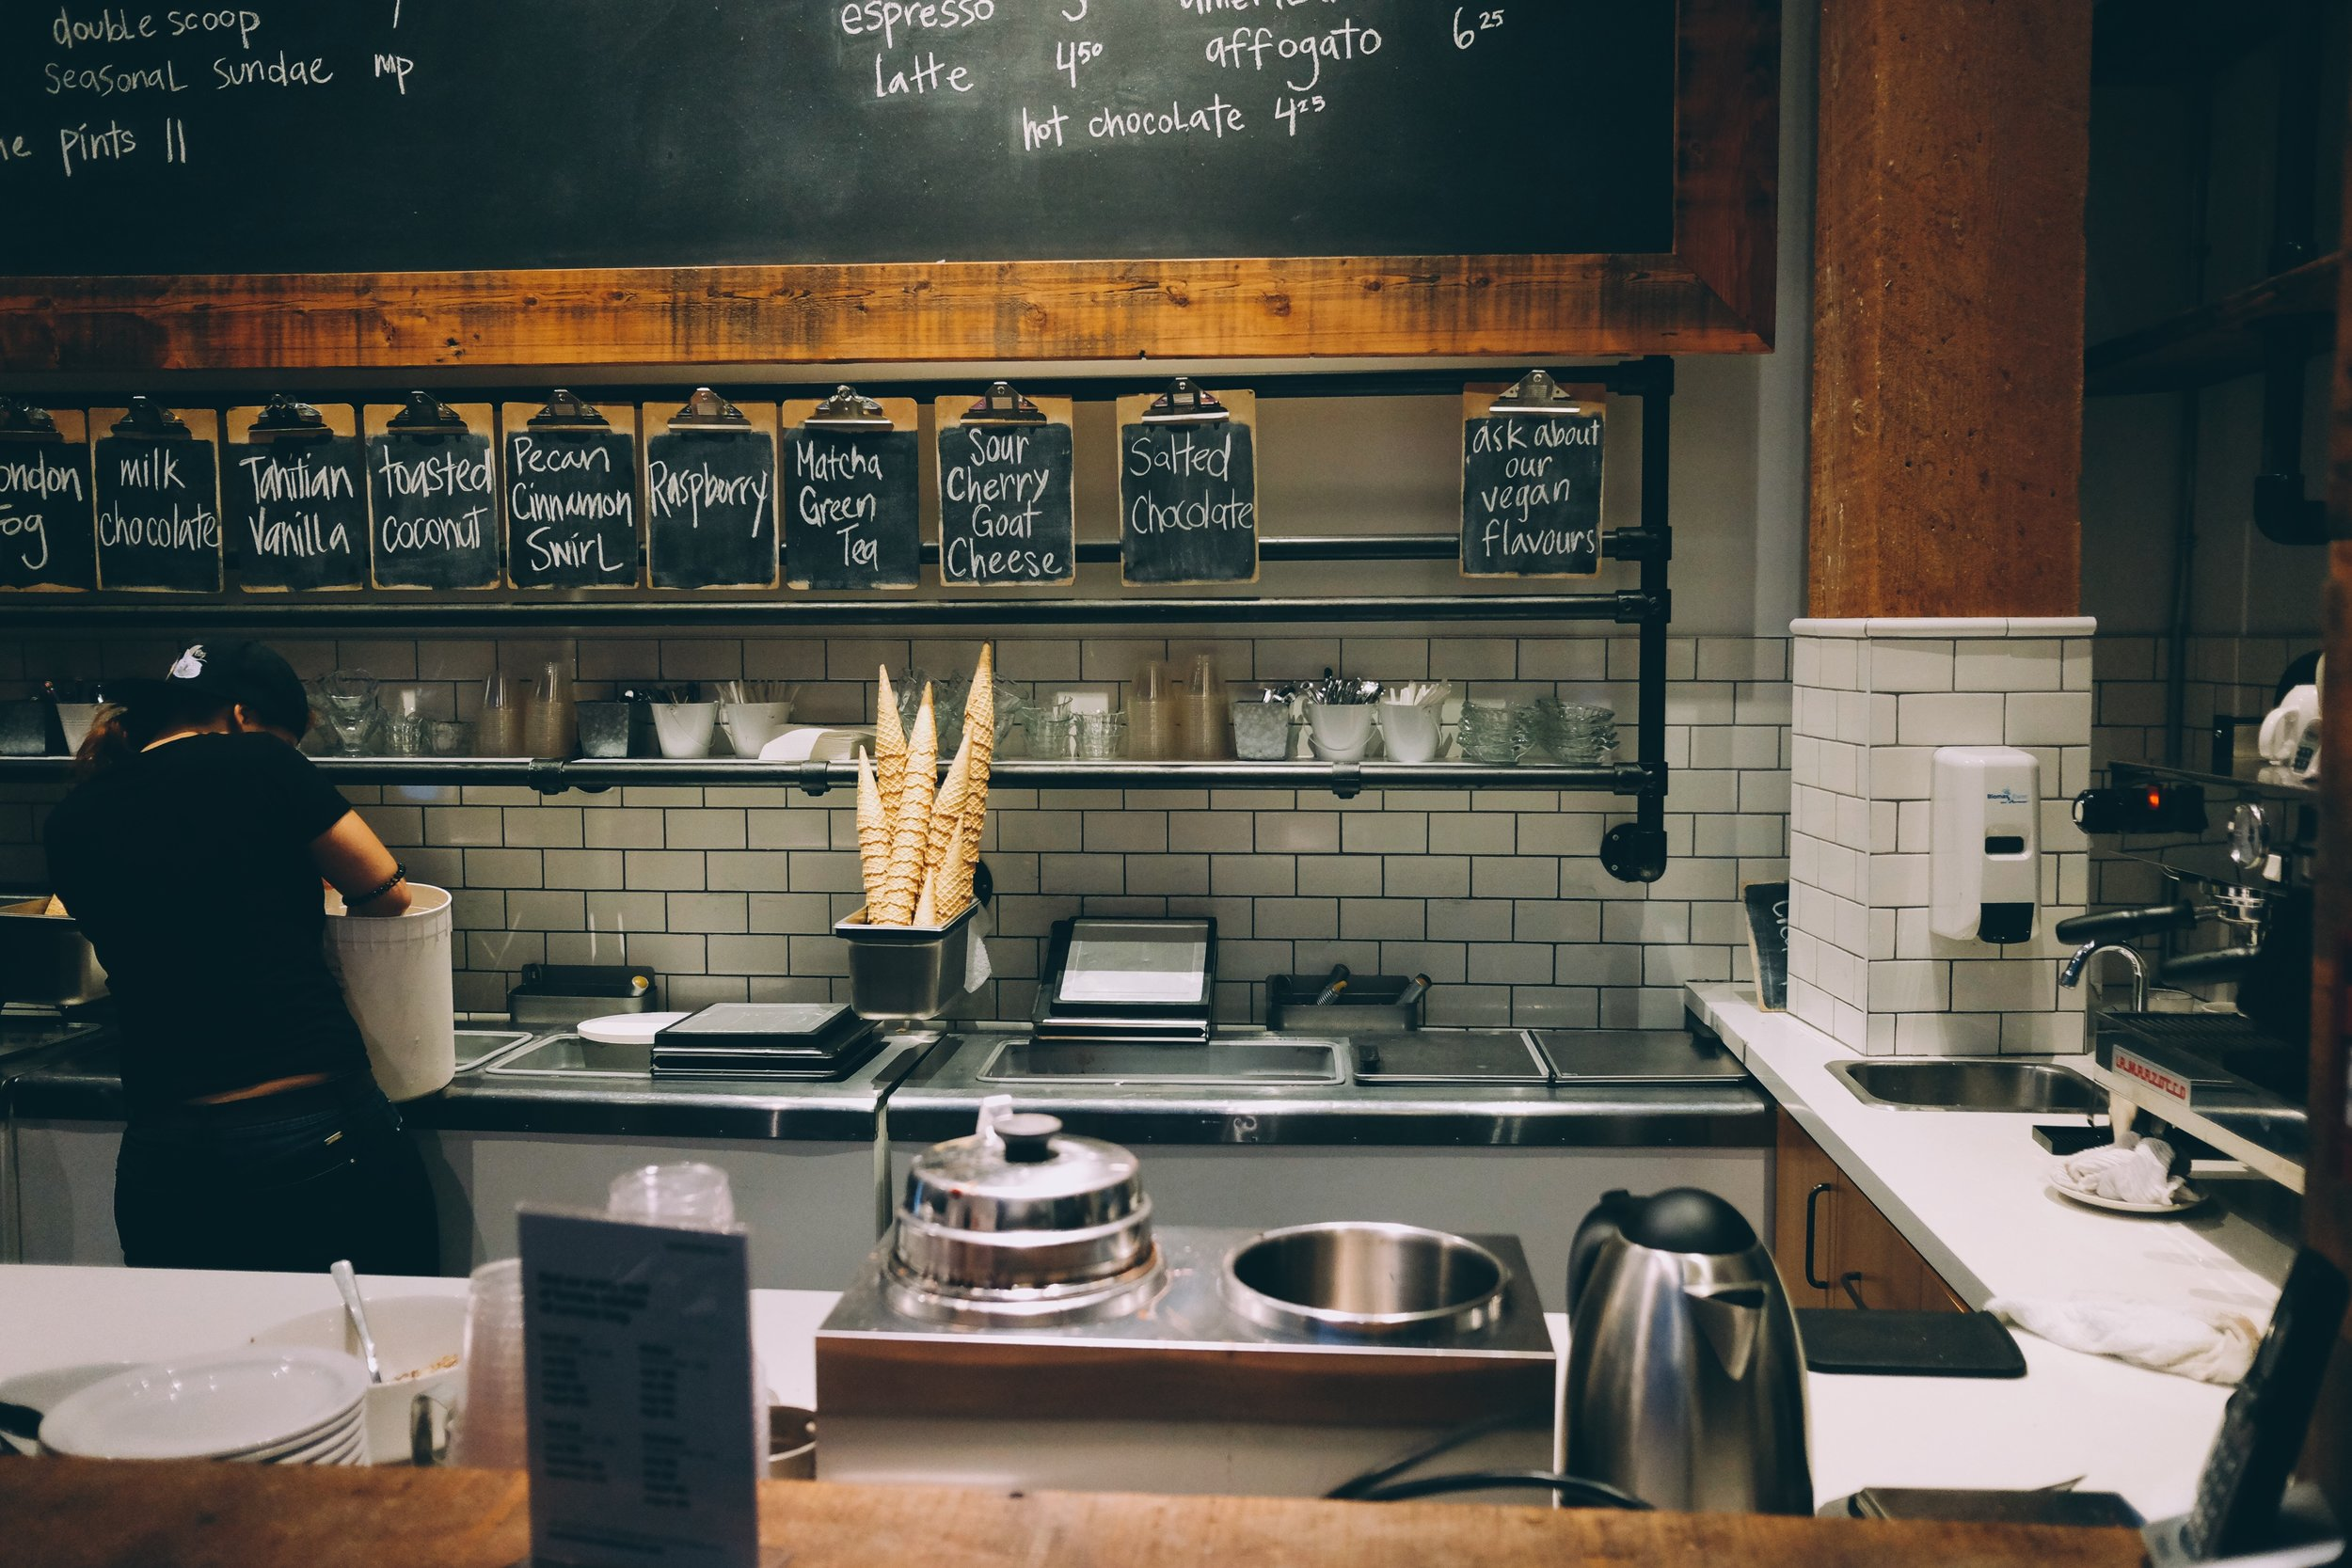 small food business image